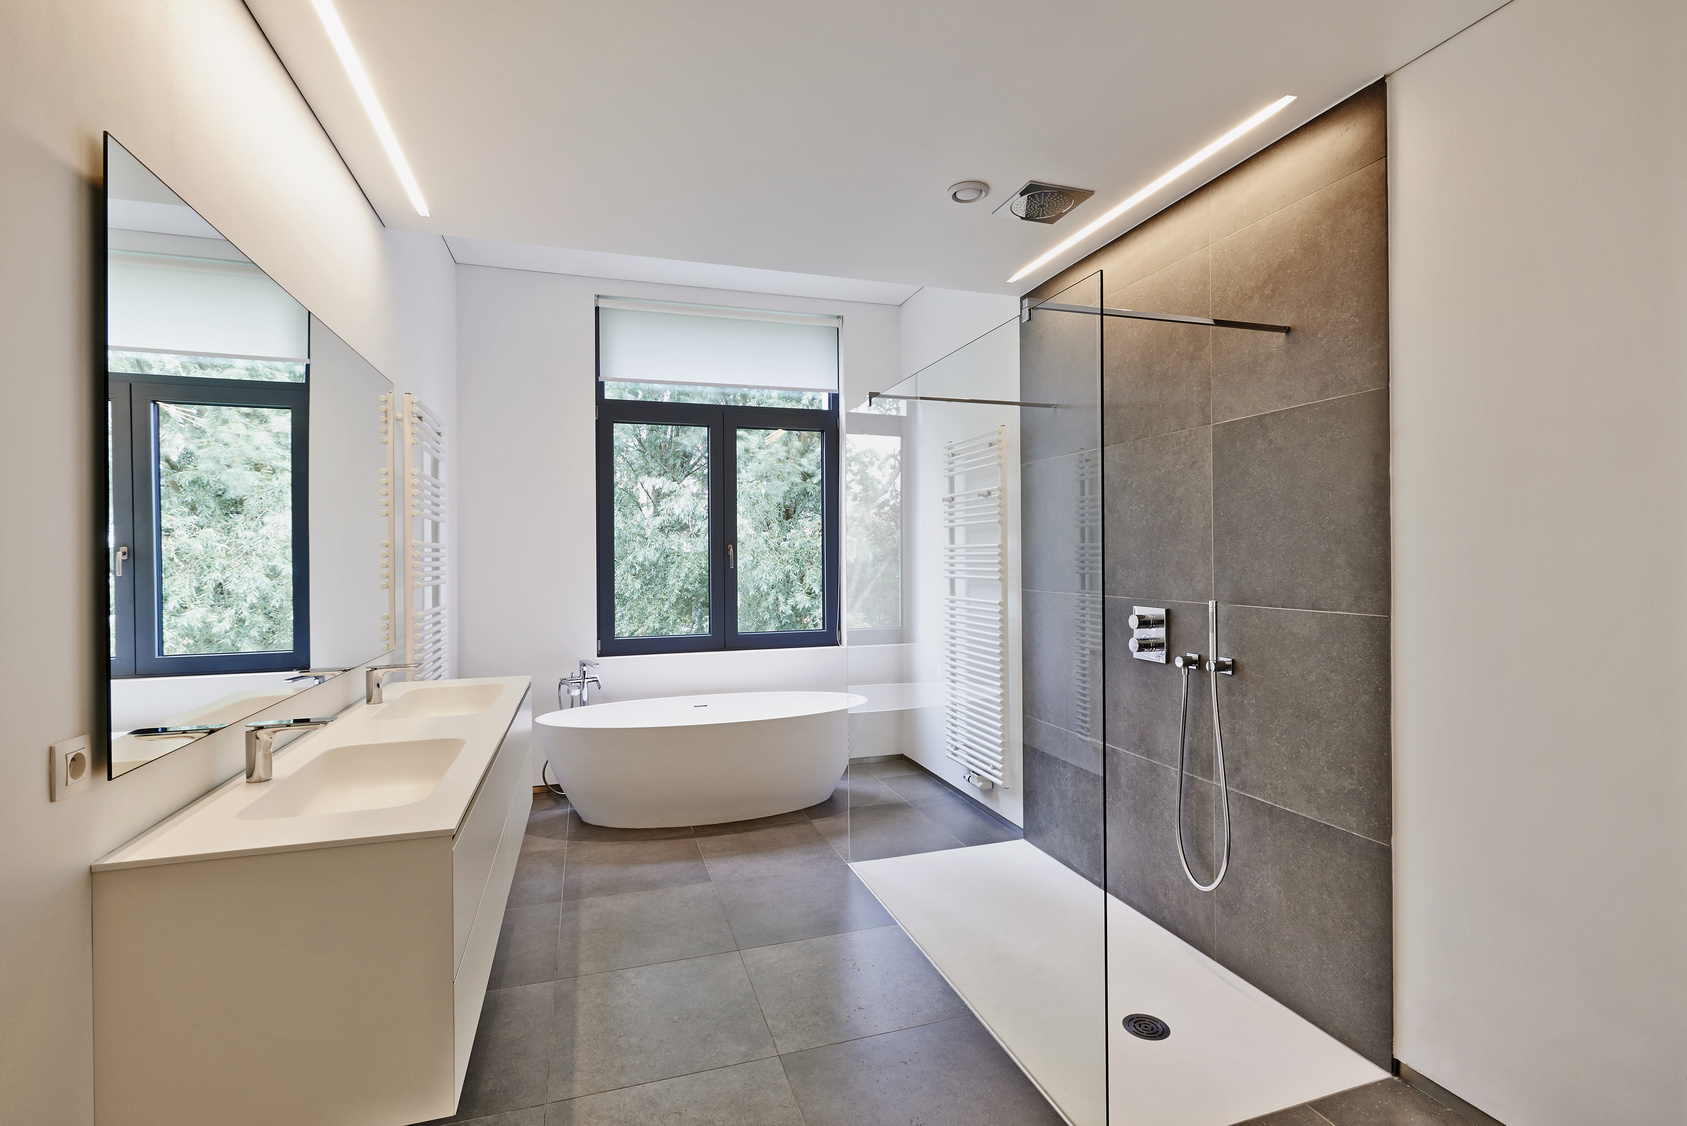 How to Make Your Small Bathroom Seem Larger